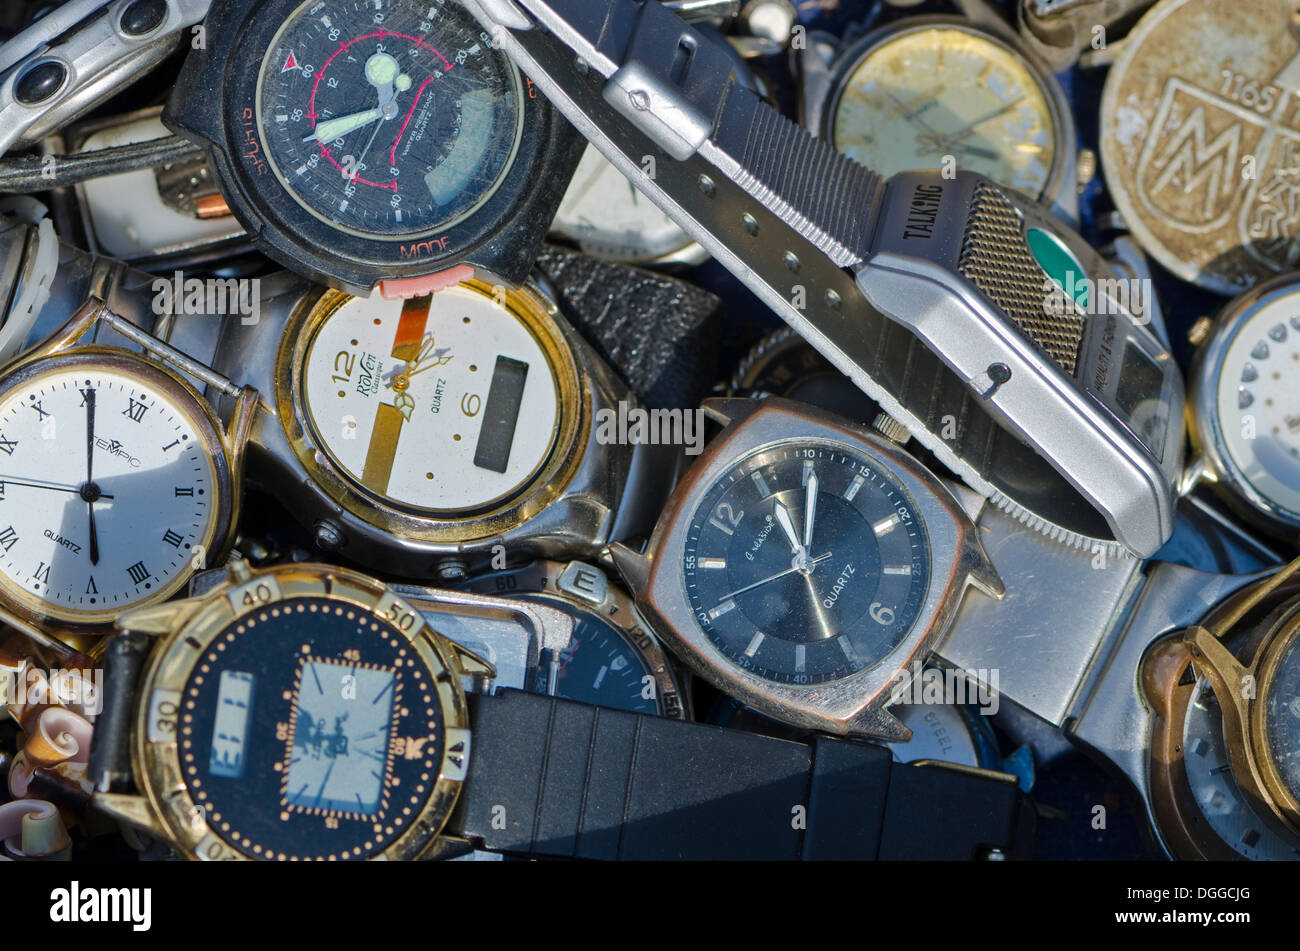 Old wristwatches for sale at the weekly flea market, Dresden, Saxony - Stock Image